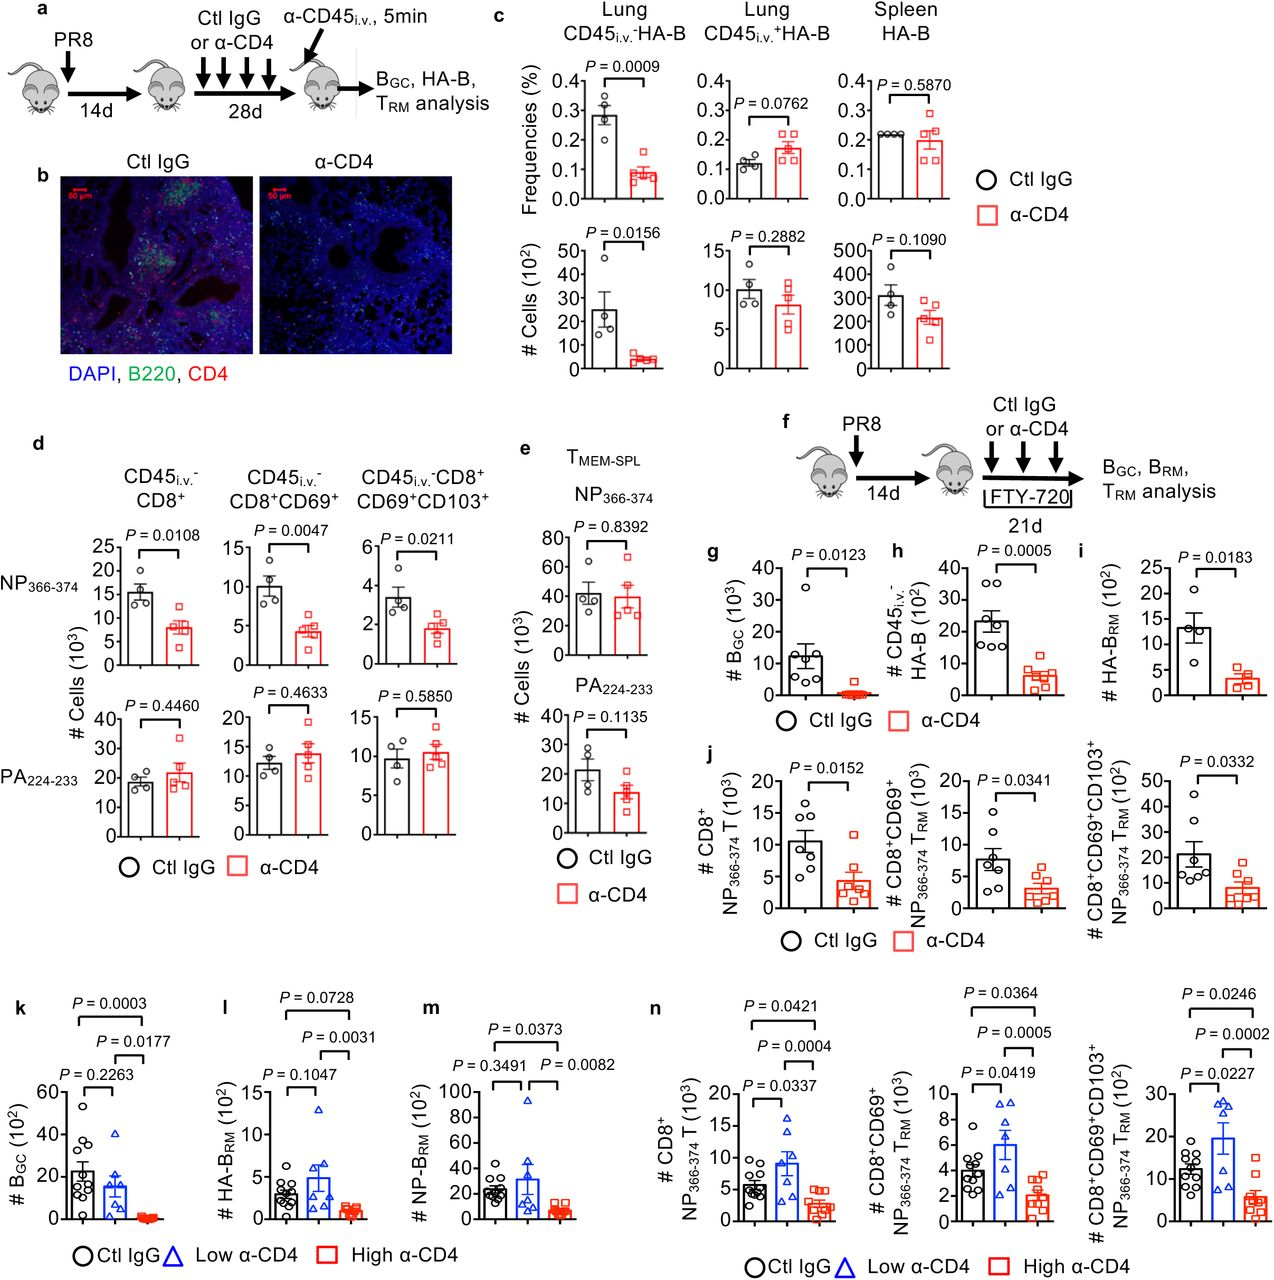 Lung CD4 + T cells deliver localized help for the development of tissue-resident B and CD8 + T cells. a-e , WT mice were infected with PR8 strain of influenza virus and treated with control (ctl) IgG or α-CD4 starting at 14 d.p.i. Mice were injected with α-CD45 intravenously (i.v.) 5 min before sacrifice at 42 d.p.i. a , Experimental scheme. b , Representative confocal images of iBALT in the lung. Lung sections were stained with α-CD4 (red), α-B220 (green) and DAPI (blue). c , Frequencies and cell number of influenza HA-specific B cells (HA-B) in the lung tissue (CD45 i.v. - B220 + GL7 - HA + ), lung blood vessels (CD45 i.v. + B220 + GL7 - HA + ) and spleen (B220 + GL7 - HA + ). d , Lung tissue CD8 + , CD8 + CD69 + or CD8 + CD69 + CD103 + NP 366-374 or PA 224-233 T RM cells were enumerated. e , Splenic CD8 + NP 366-374 or PA 224-233 memory cells (T MEM-SPL ) were enumerated. f-j , WT mice were infected with PR8 and treated with ctrl IgG or α-CD4 (starting at 14 d.p.i.) in the presence of daily injection of FTY-720 (starting at 13 d.p.i.). f , Schematic of experimental design. g , B GC cell numbers were enumerated by flow cytometry. h, i , Total HA-specific B cells (total HA-B) ( h ) or HA-specific tissue-resident memory B cells (HA-B RM : CD45 i.v. - B220 + GL7 - IgD - IgM - HA + CD38 + ) ( i ) were enumerated. j , Lung tissue CD8 + , CD8 + CD69 + or CD8 + CD69 + CD103 + NP 366-374 or PA 224-233 T RM cells were enumerated. k-n , WT mice were infected with PR8 and received ctl IgG, high or low dose of α-CD4. Cell number of B GC ( k ), HA-specific B RM ( l ) and NP-specific B RM cells ( m ) in the lung tissue. n , Lung tissue CD8 + , CD8 + CD69 + or CD8 + CD69 + CD103 + NP 366-374 T RM cells were enumerated. In b-e were the representative data from at least two independent experiments (4-5 mice per group). In g-h and j-n , data were pooled from two ( g, h and j ) or three ( k - n ) independent experiments (2-5 mice per group). P values were calculated by unpaired two-